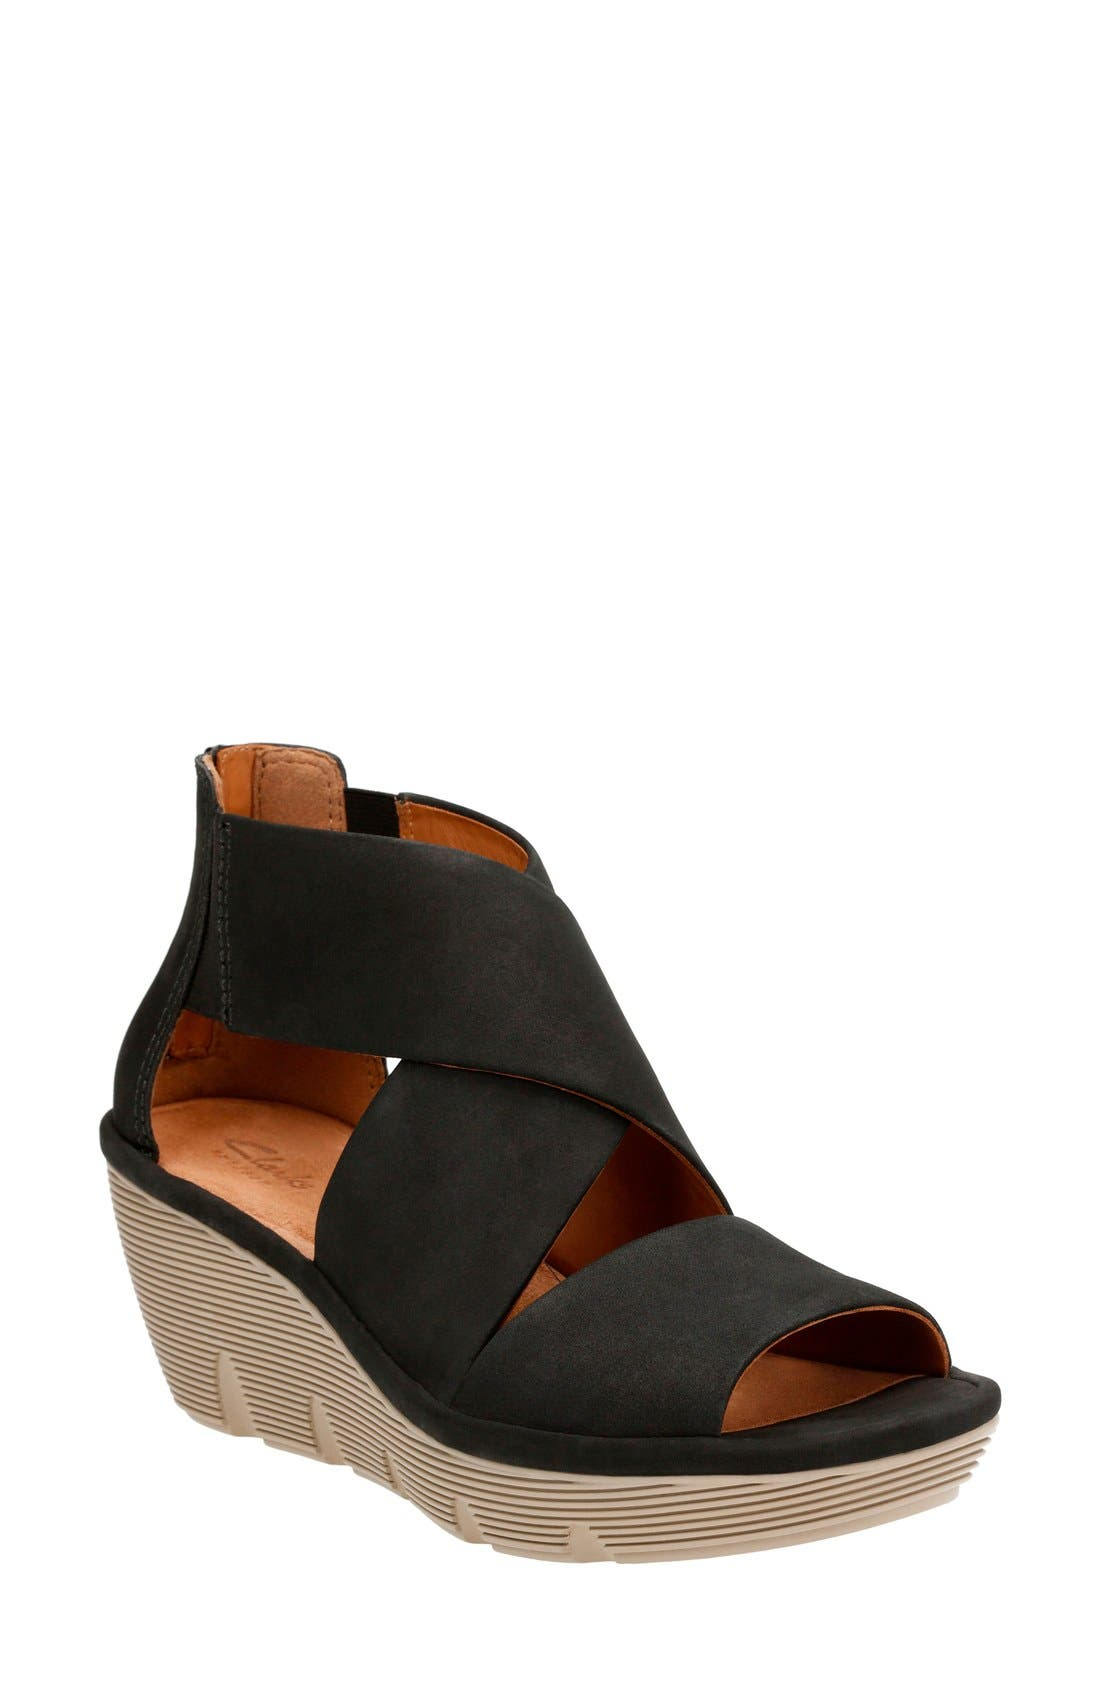 Alternate Image 1 Selected - Clarks® Clarene Glamor Wedge Sandal (Women)